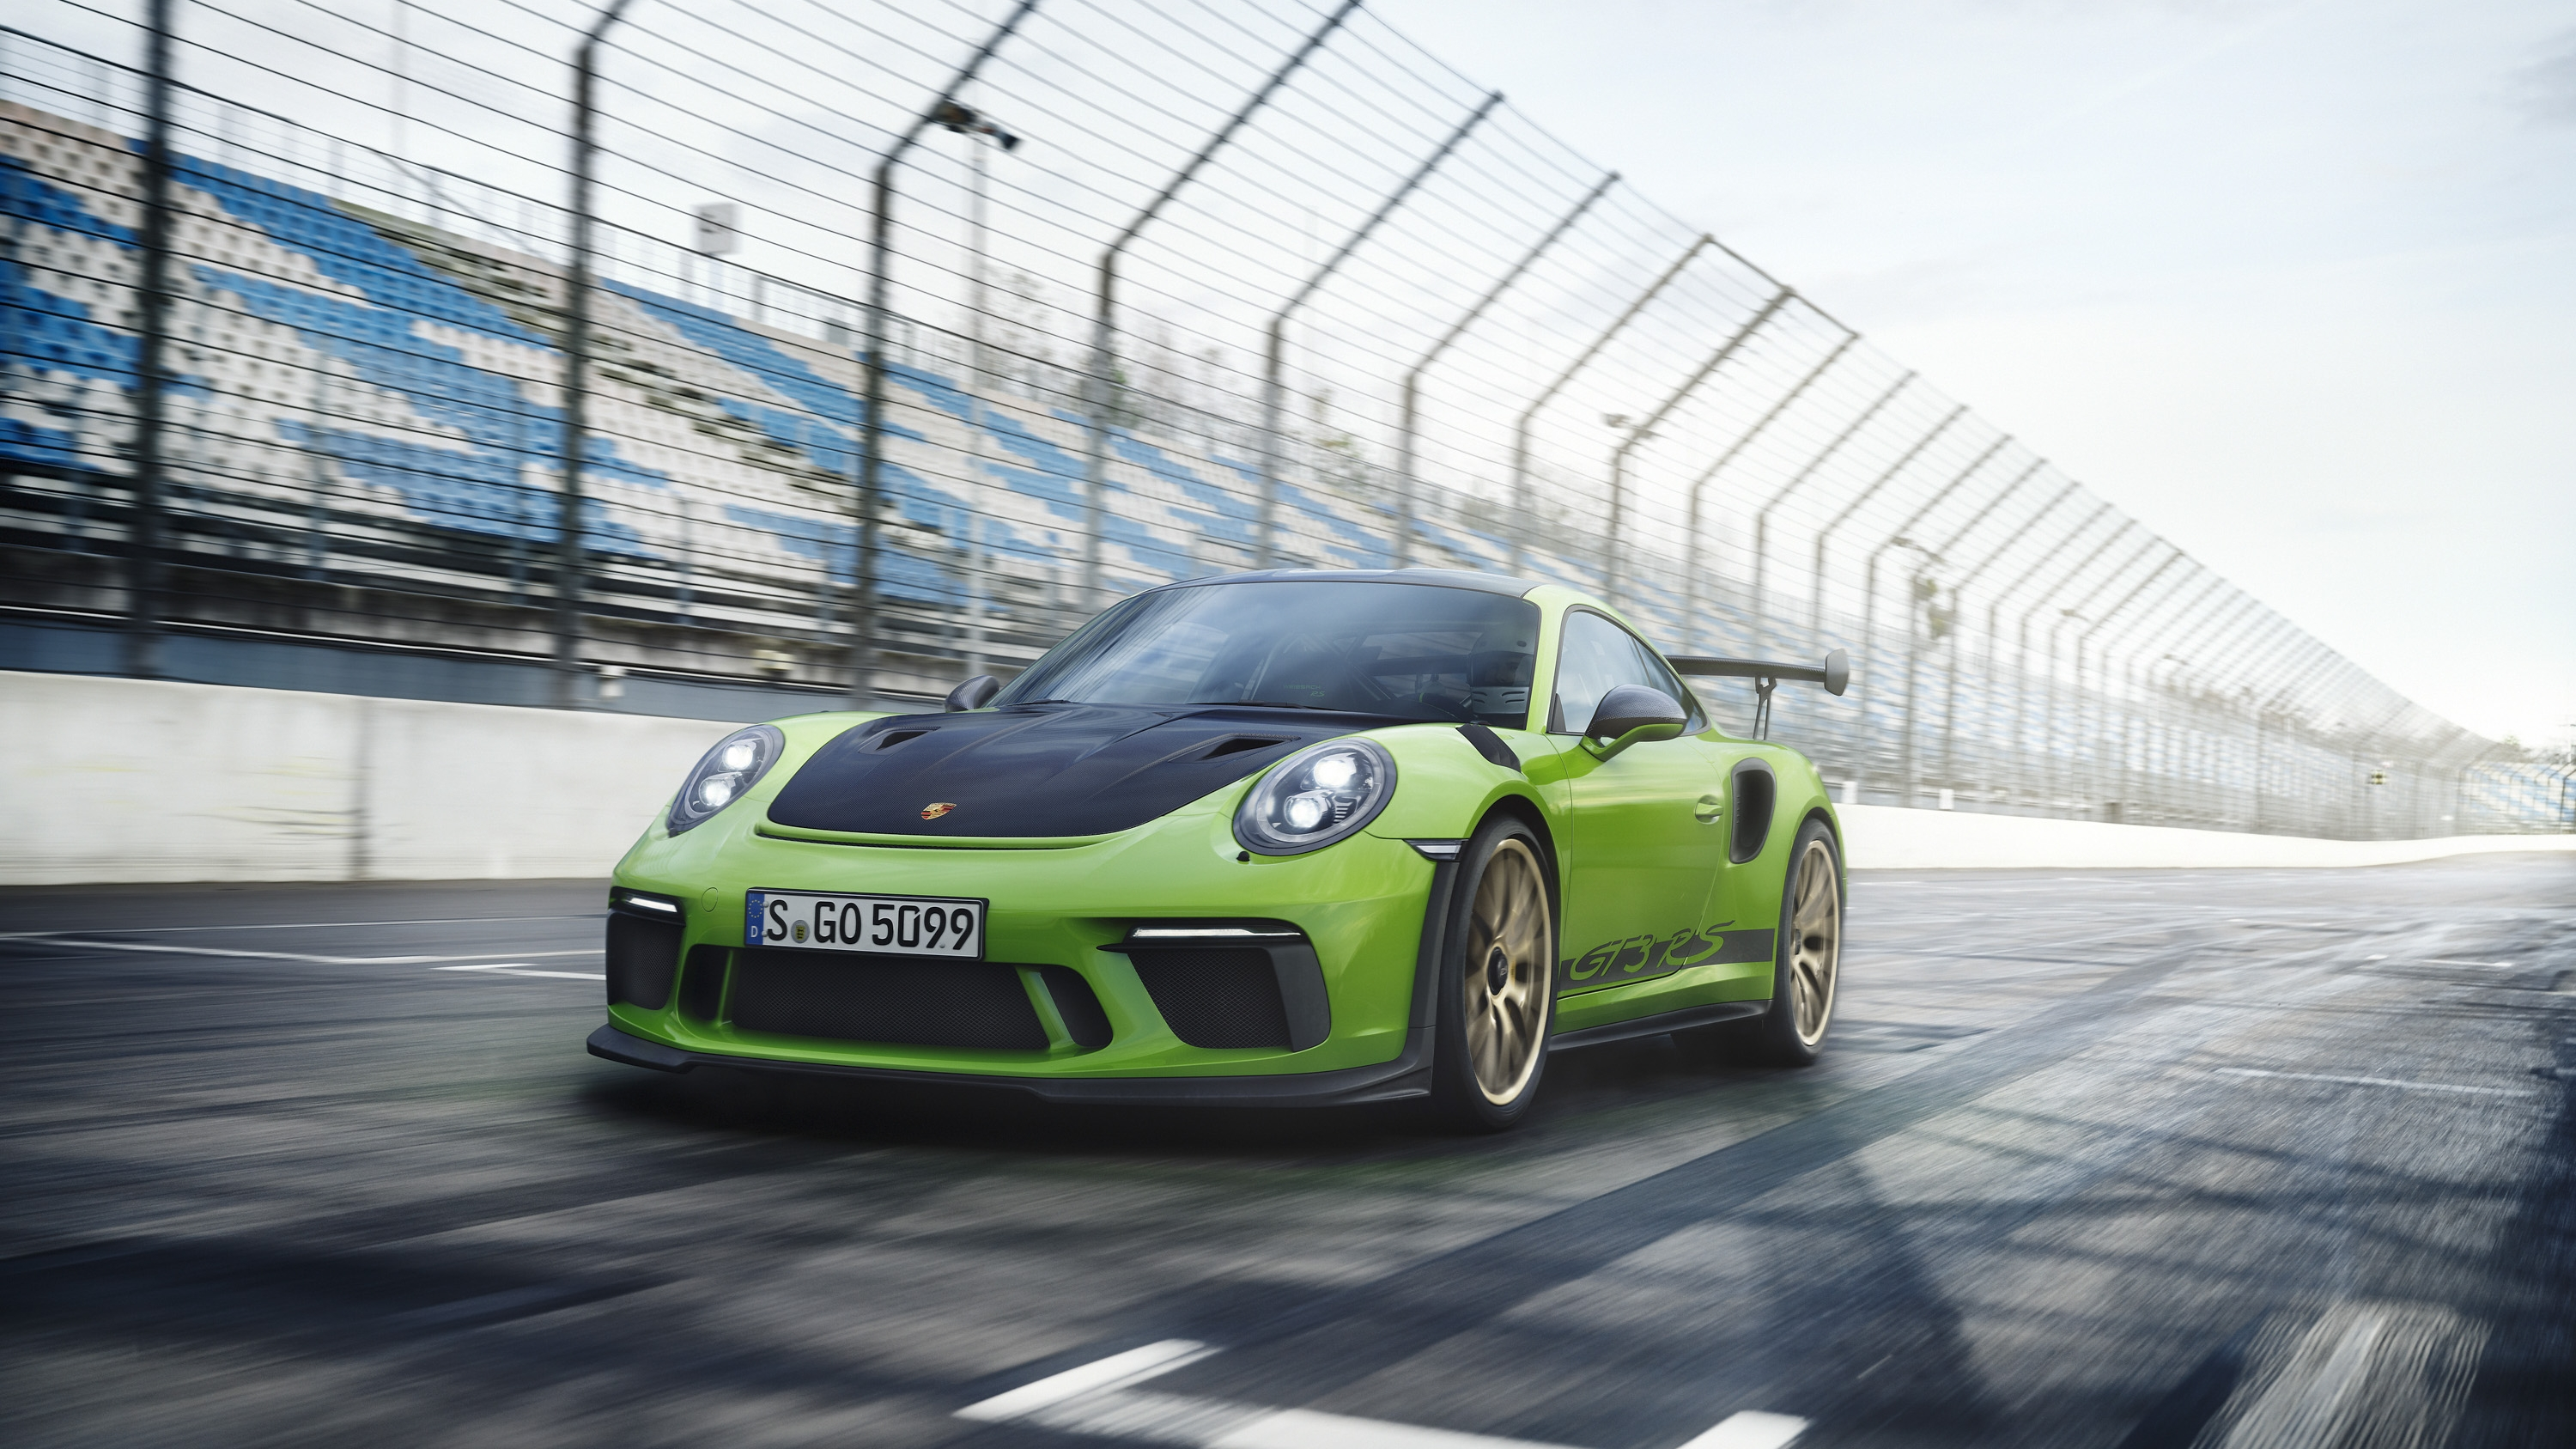 The 992 Gen 2021 Porsche 911 Gt3 Rs Will Remain Fully Aspirated And Feature A Surprise Upgrade Top Speed